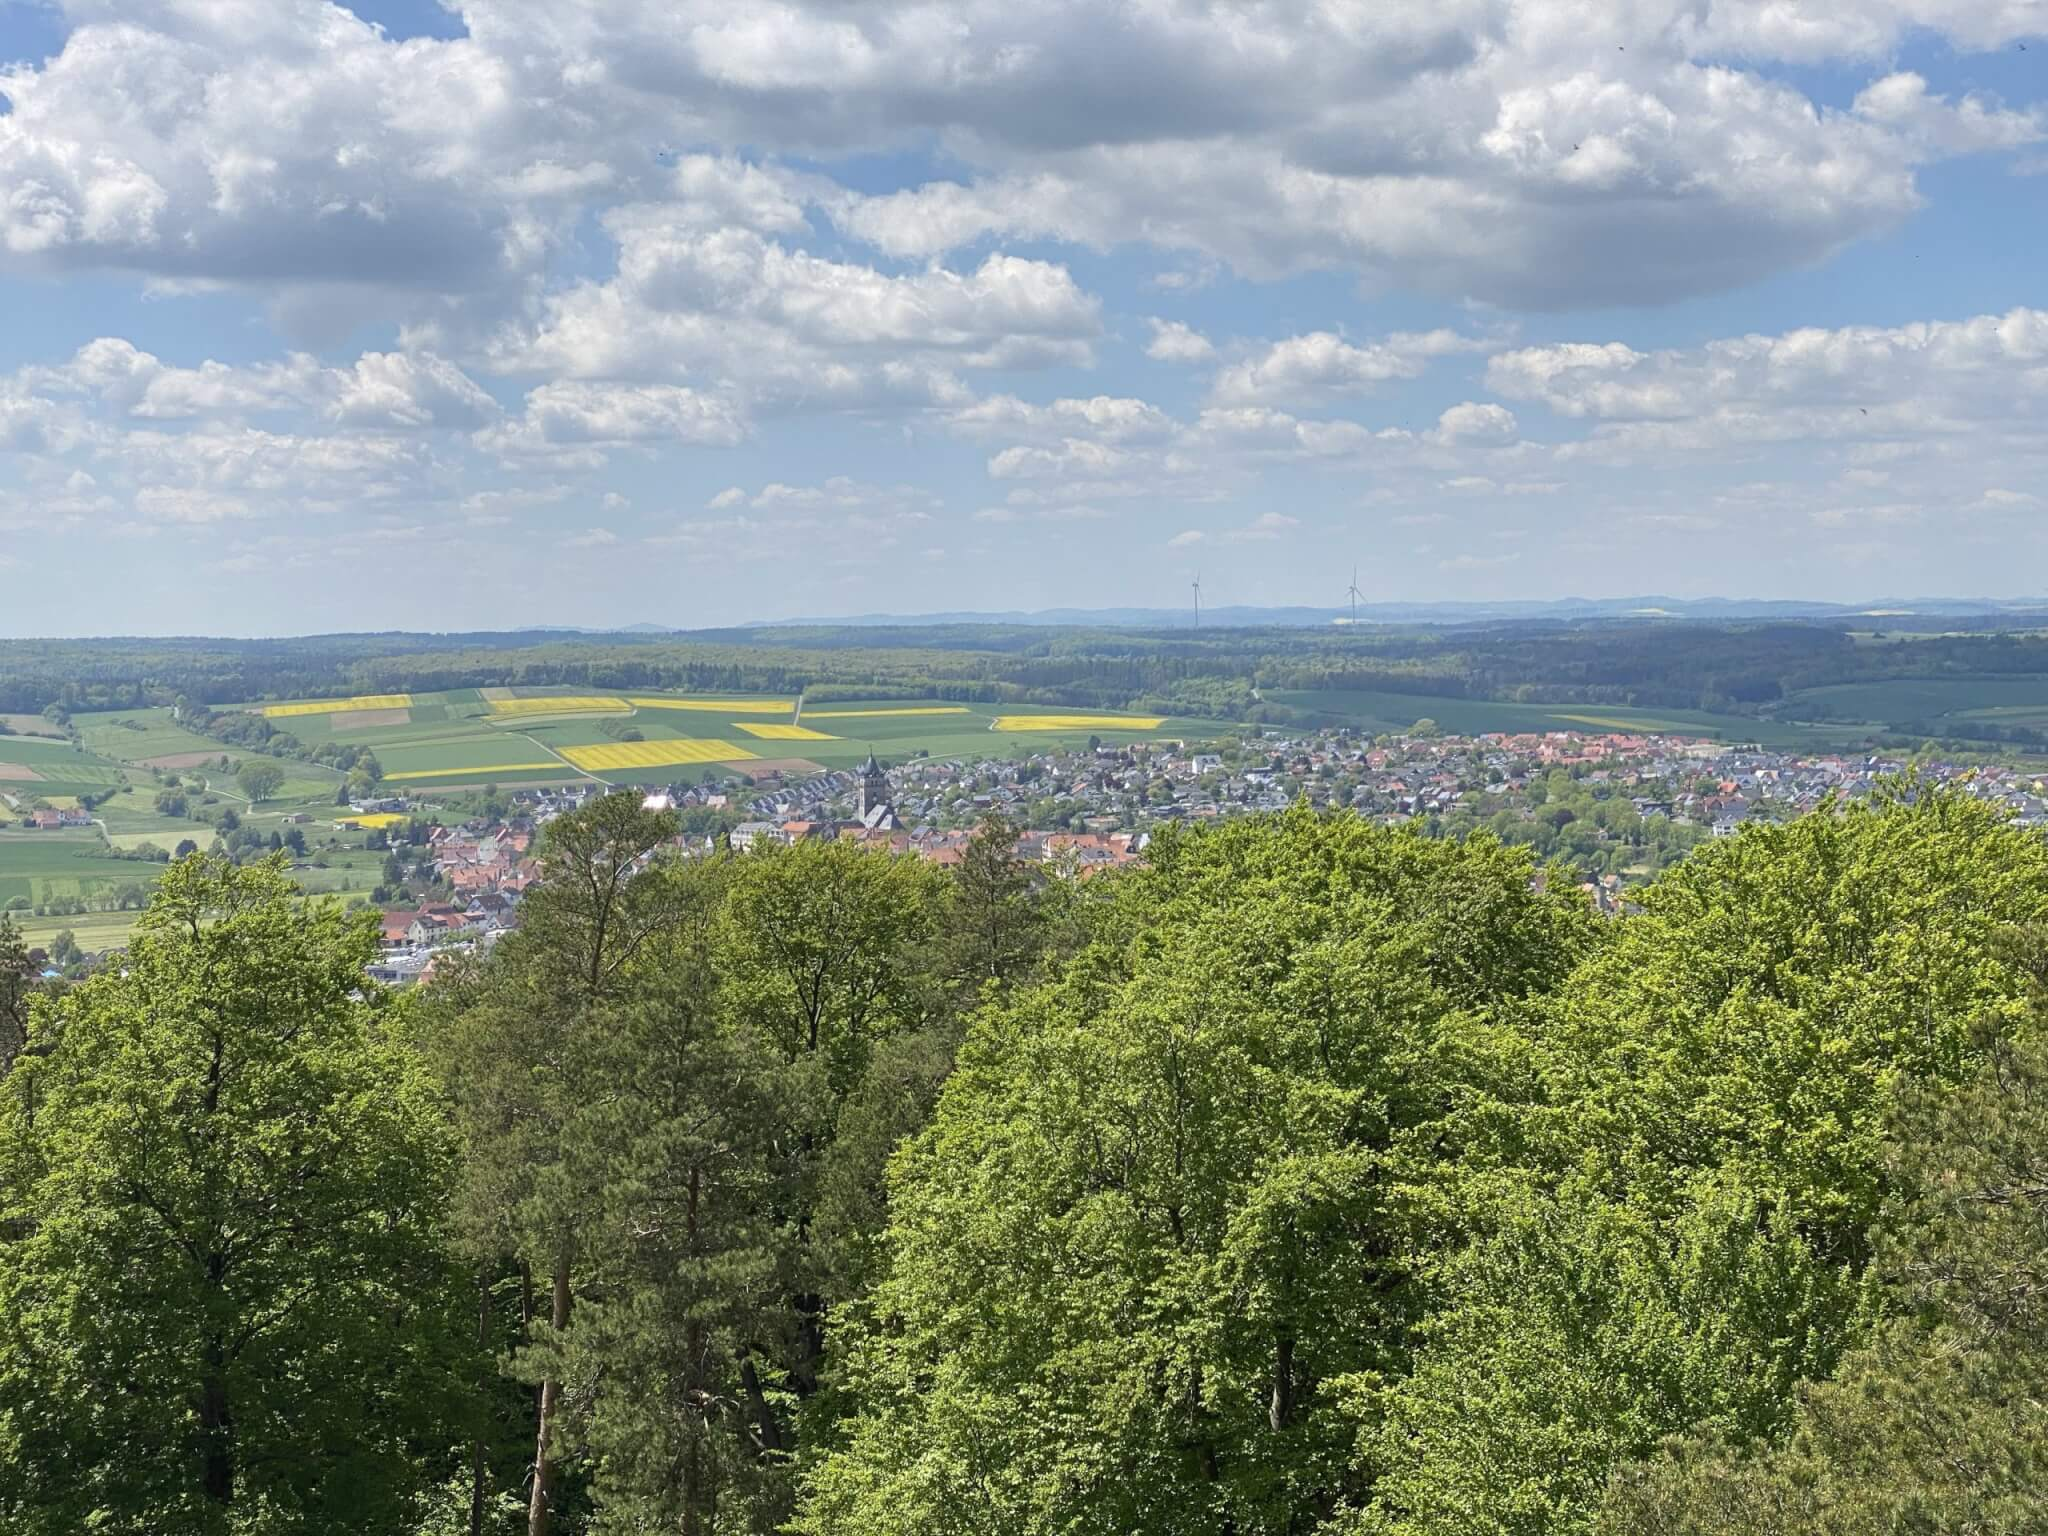 View from Ofenberg tower, Wolfhagen